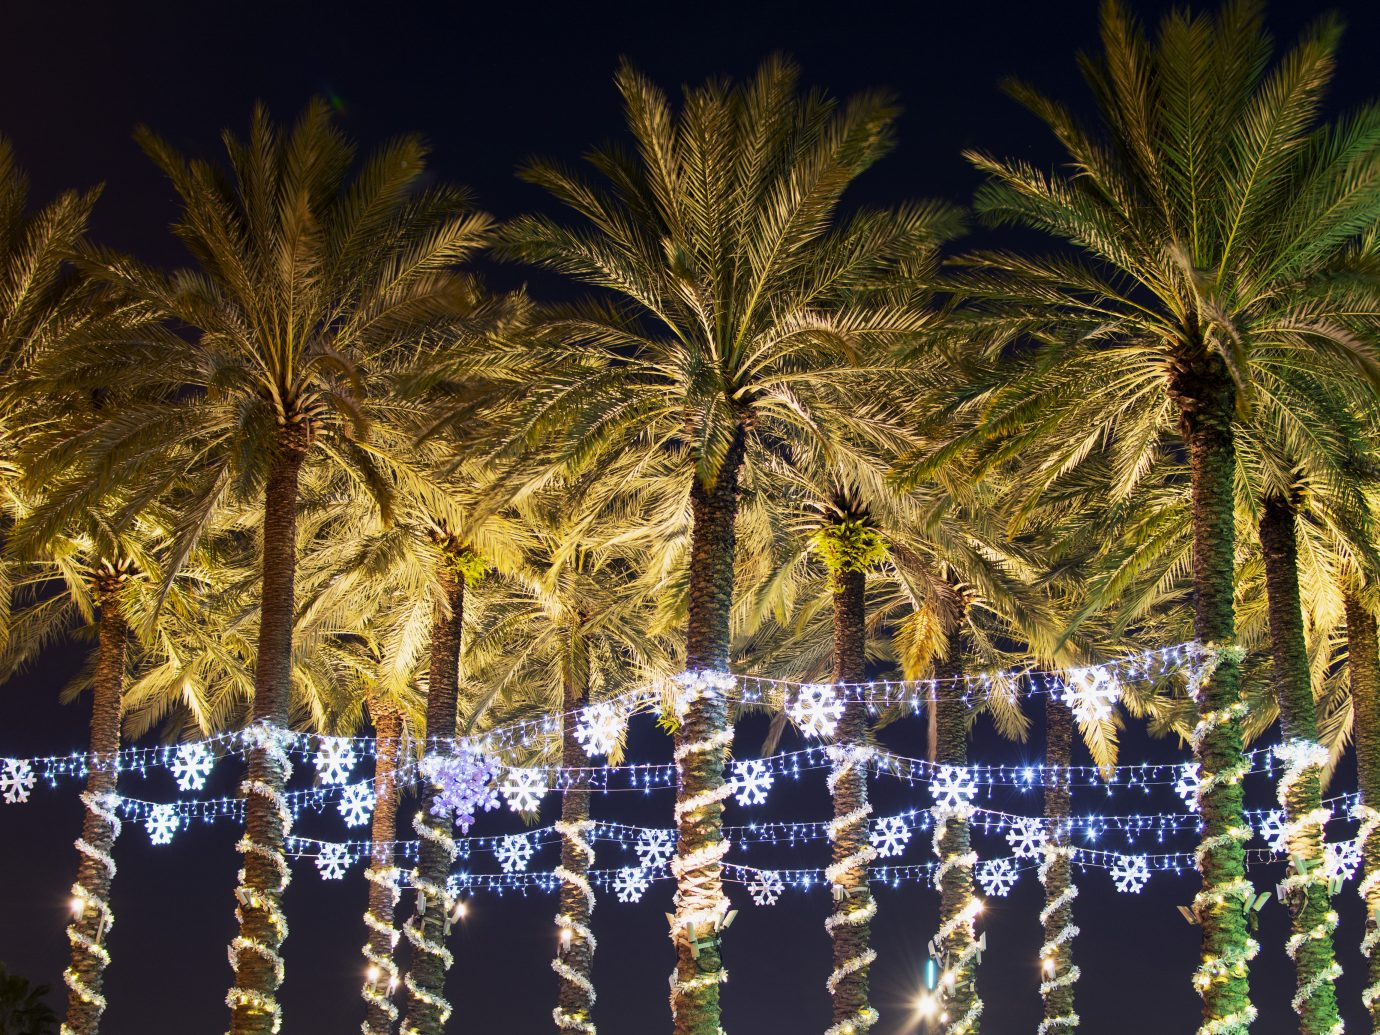 Christmas holiday illumination on palm trees in Florida.